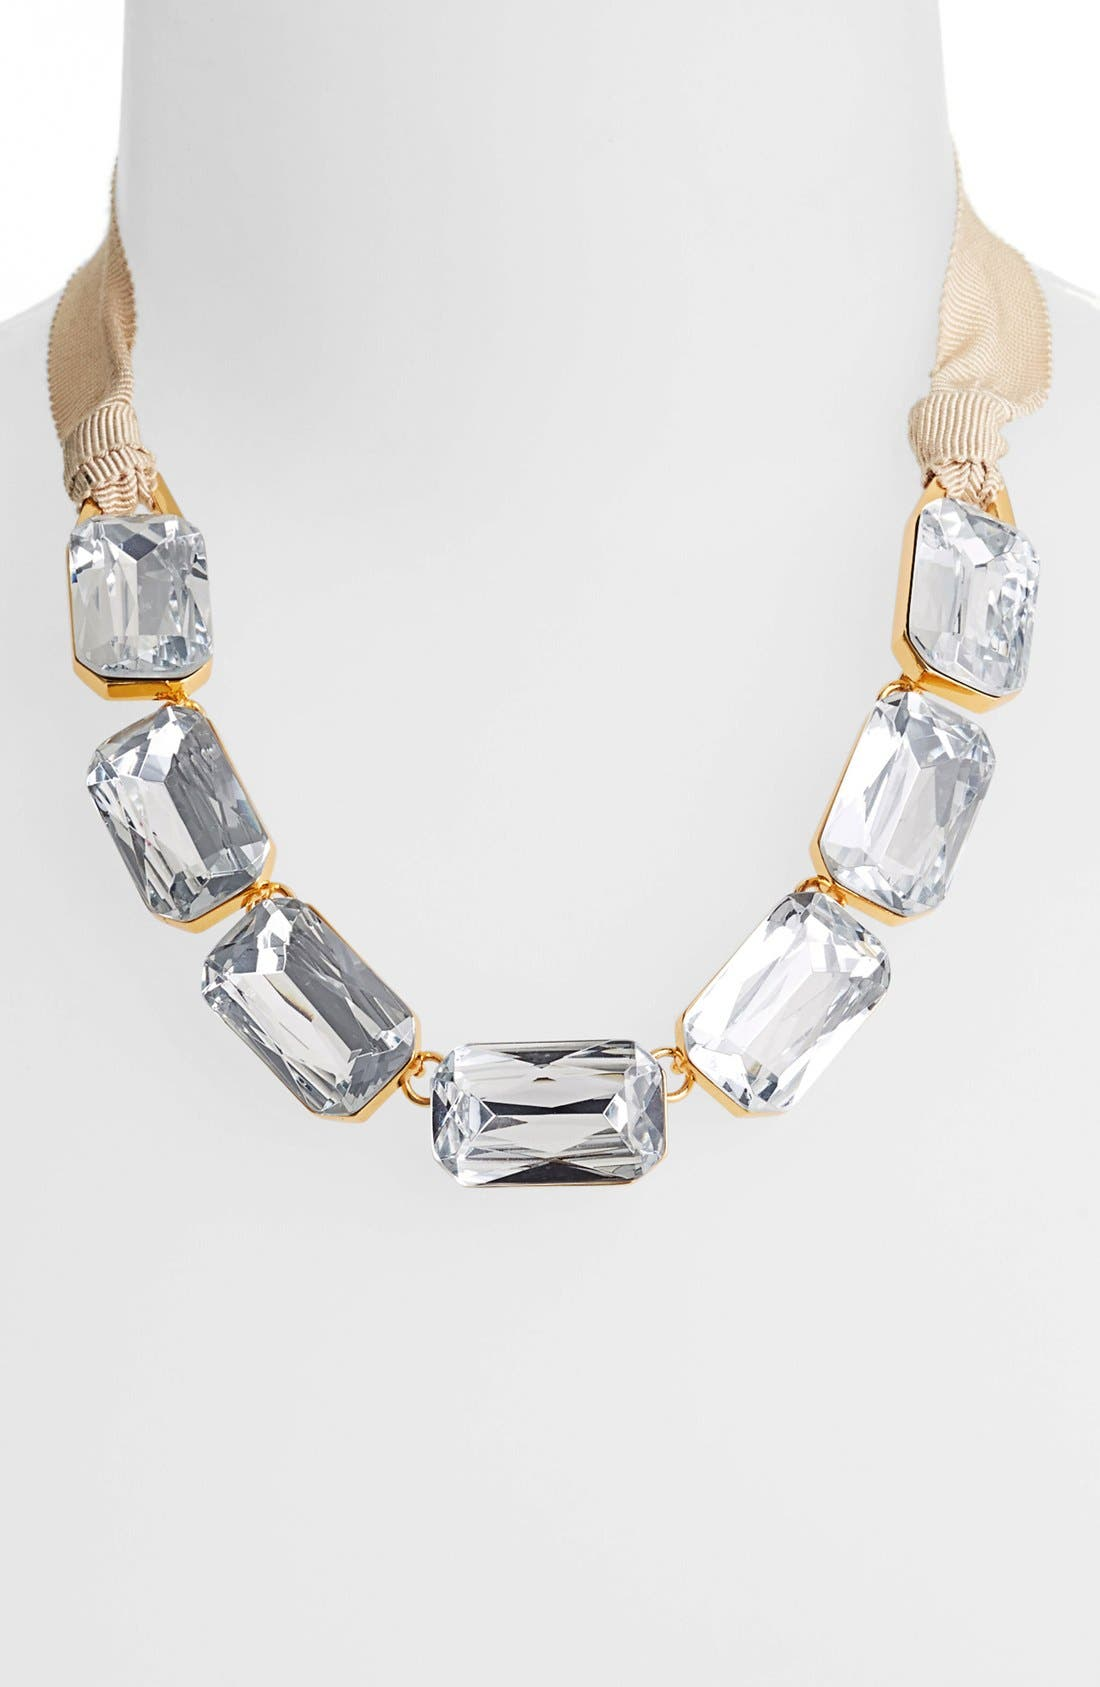 Main Image - Vince Camuto 'Crystal Clear' Crystal & Ribbon Frontal Necklace